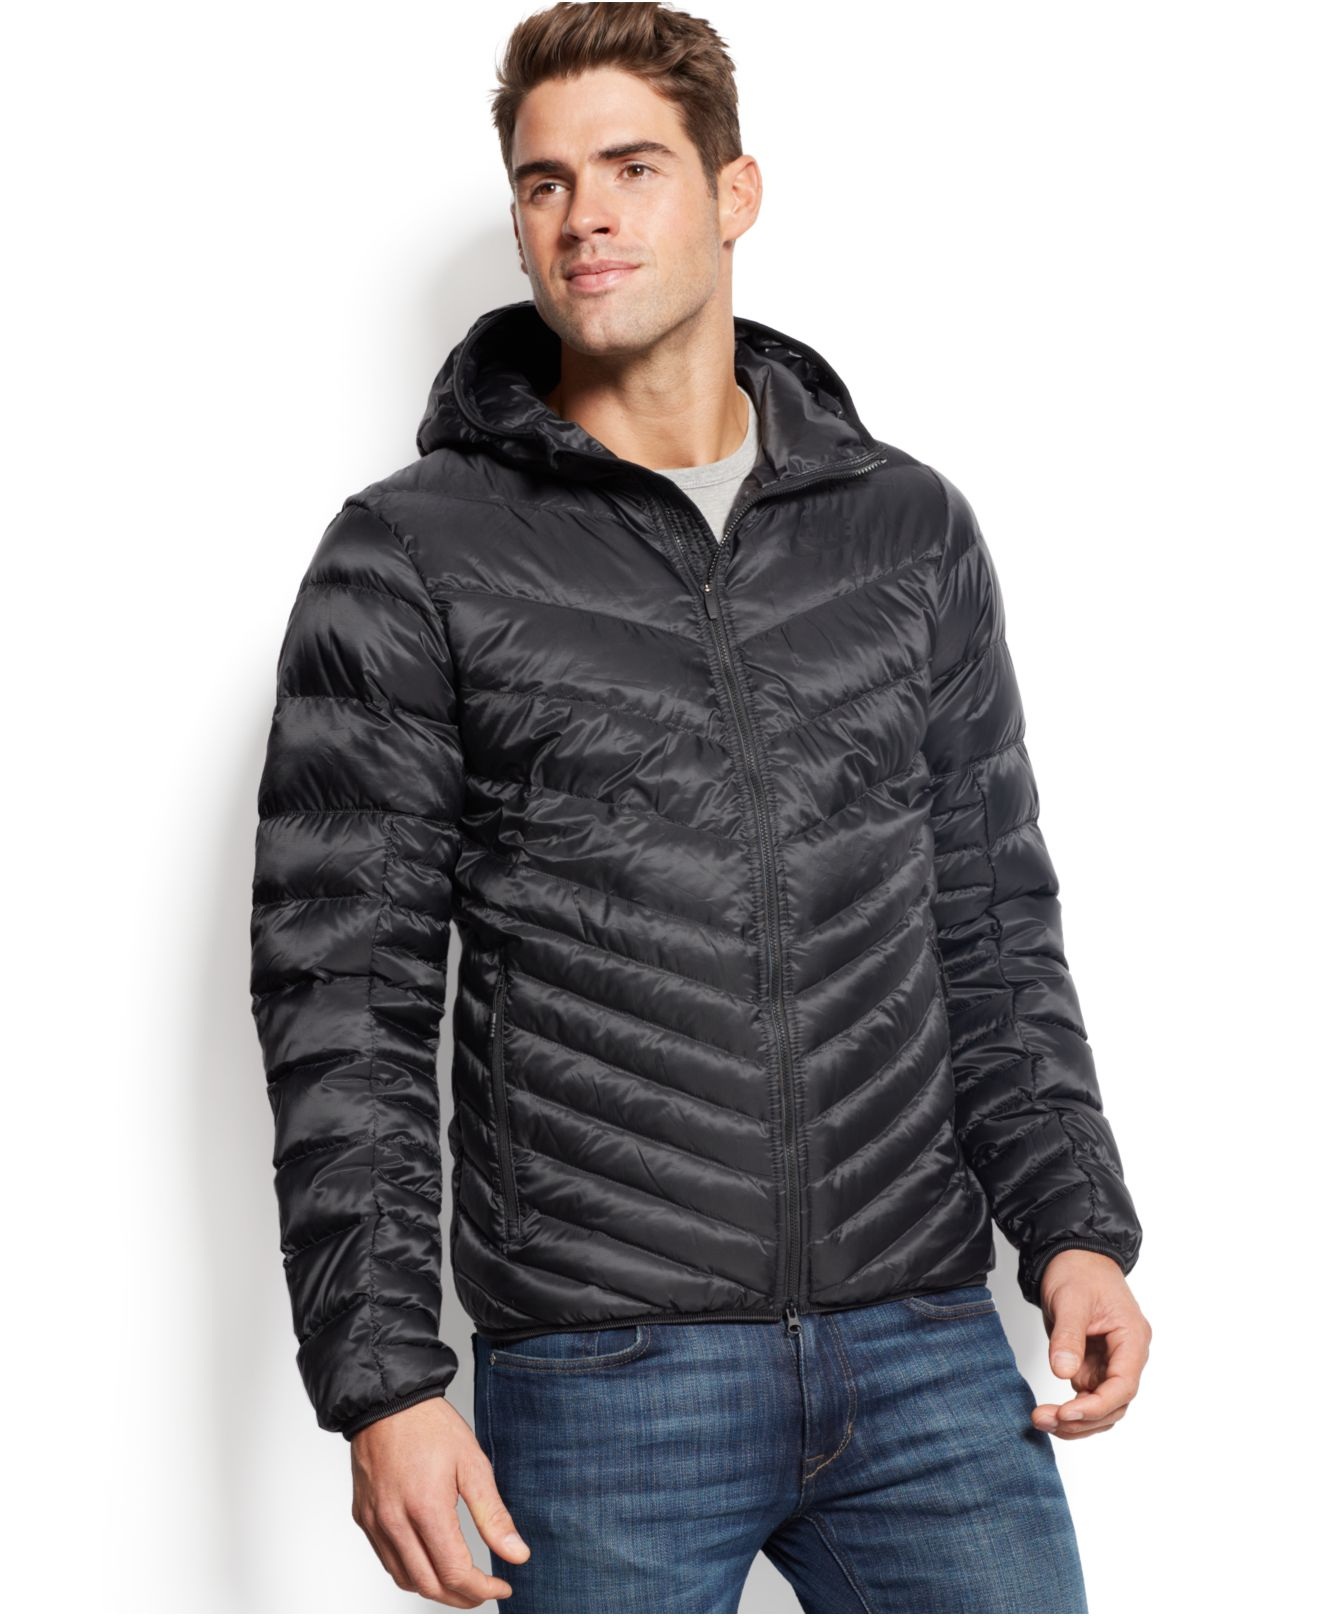 Lyst - Nike Cascade Packable Down Jacket in Black for Men 22892f333749